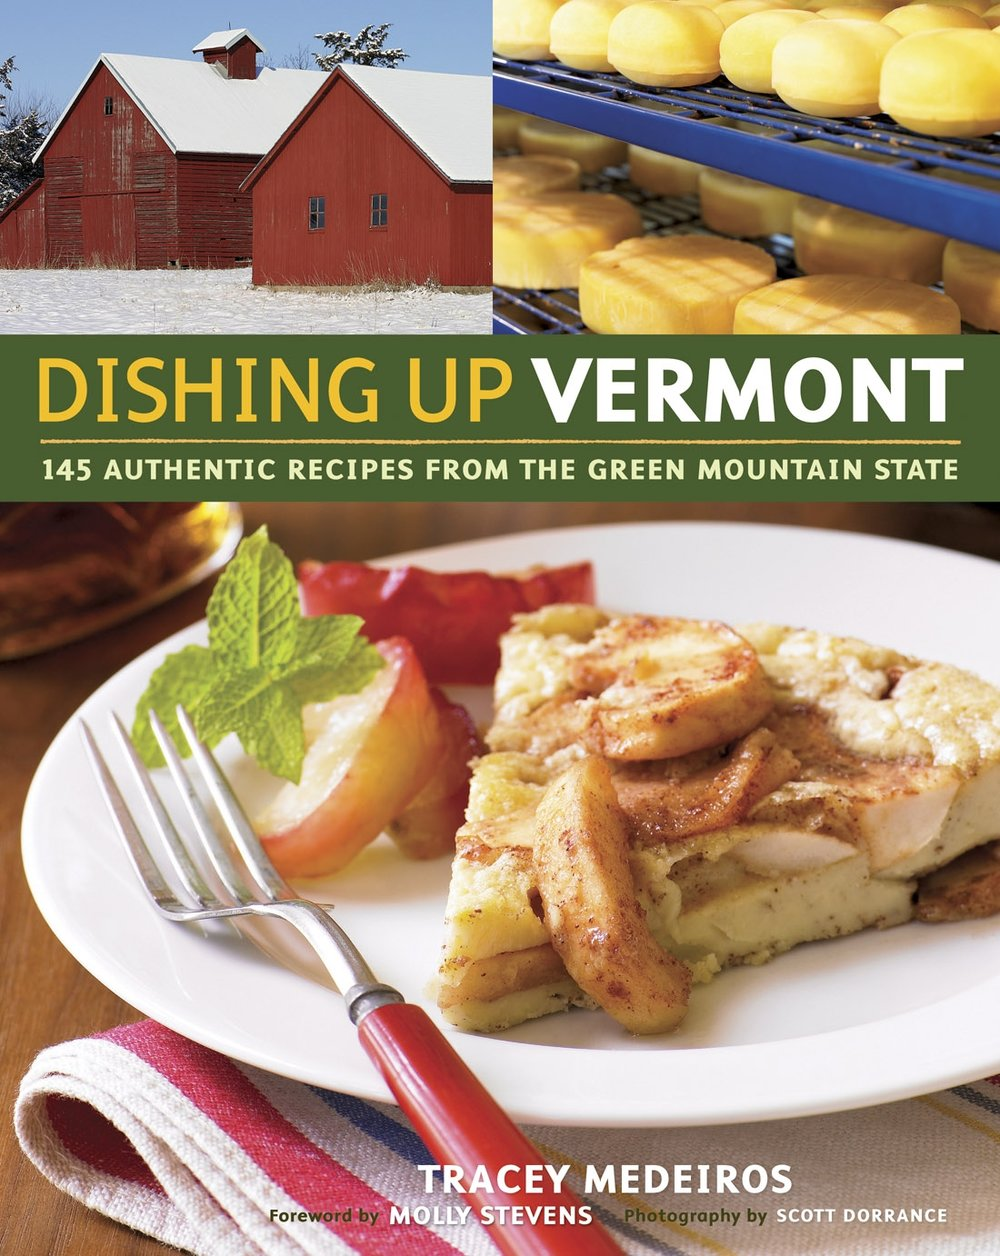 Dishing Up Vermont The sharp tang of cheddar cheese and the earthy sweetness of maple syrup are Vermont's signature flavors. But they're just the tip of the Vermont food pyramid. Dairy farms support cheese production that goes far beyond classic cheddars. Farmers coax an impressive variety and quantity of produce from land that's buried under snow for many months of the year. Game animals, rabbits, and traditional livestock thrive on small family farms where the farmers are committed to using sustainable, organic methods. Taking advantage of this wonderful food are innovative chefs trained to bring out the best in their ingredients, B&B owners who take pride in their robust country breakfasts, and the farmers themselves who love sharing the recipes that make their products shine. Dishing Up Vermont, a collection of recipes from a broad range of cooks dedicated to sustaining and enriching local culinary traditions, celebrates the classic taste of the Green Mountain state with fresh interpretations of everything from blueberry pancakes sweetened with maple syrup to a savory tart made with onions, apples, and Grafton Cheddar. This insider's view of Vermont cooking is rounded out with profiles of the people and places that make the state's food scene so exciting. Here are classically trained chefs, home bakers, farmers, winemakers, comfort-food cooks, beekeepers, orchard and sugar-shack owners, craft brewers, and all the other foodies who keep Vermont traditions alive while developing vibrant new flavor combinations that respect the integrity of the raw ingredients. Storey Publishing, LLC 210 Mass MoCA Way North Adams, MA 01247 Tel: (800) 827-8673 Fax: (800) 865-3429 Link to Amazon.com